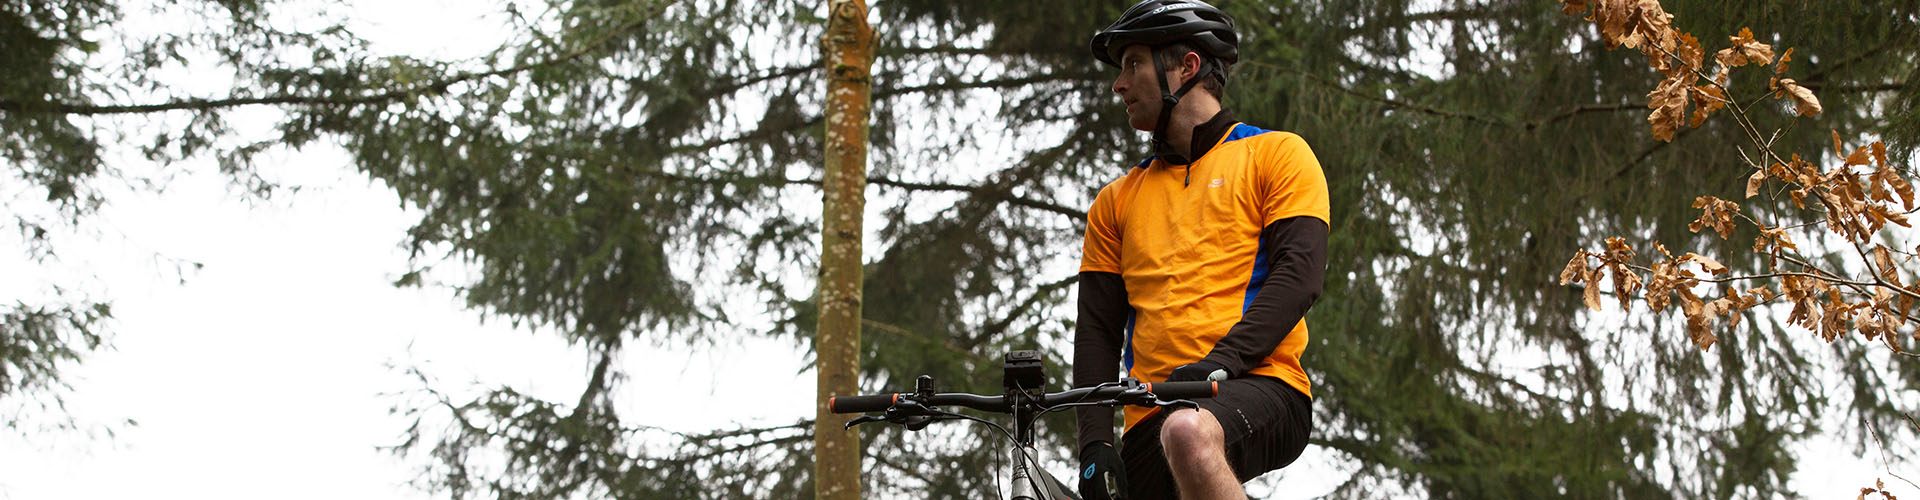 man-on-bike-in-woods.jpg